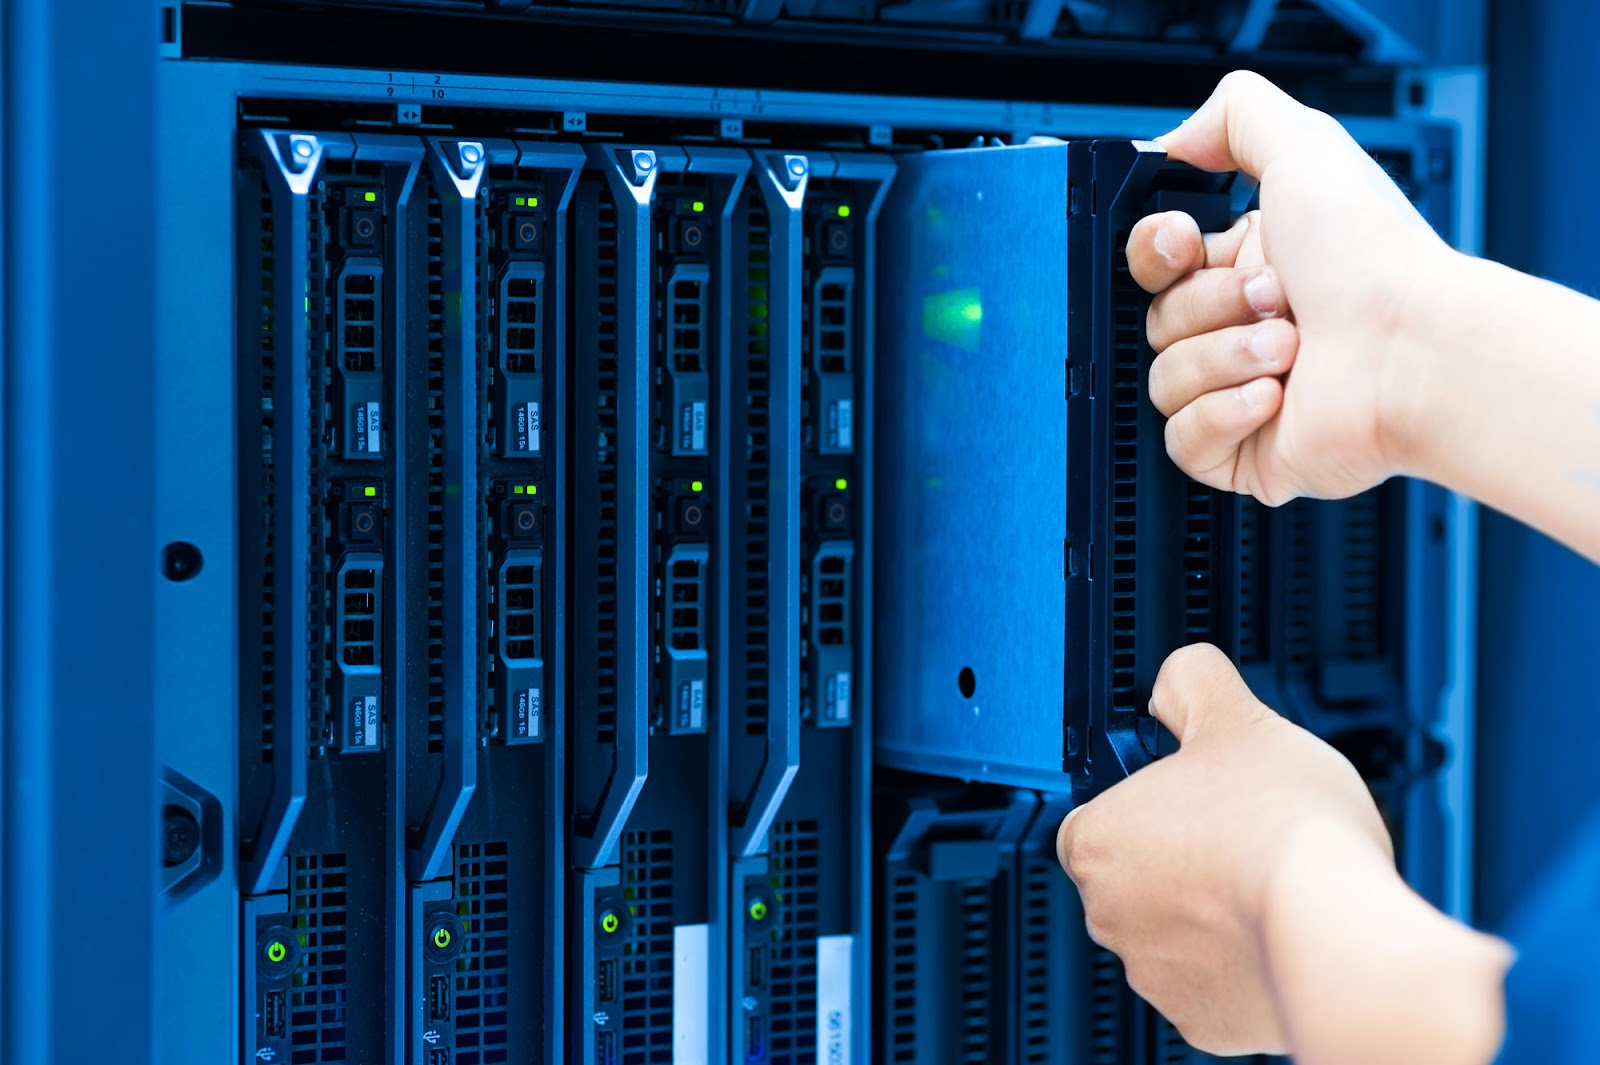 web hosting in pakistan is offered by pakchamp